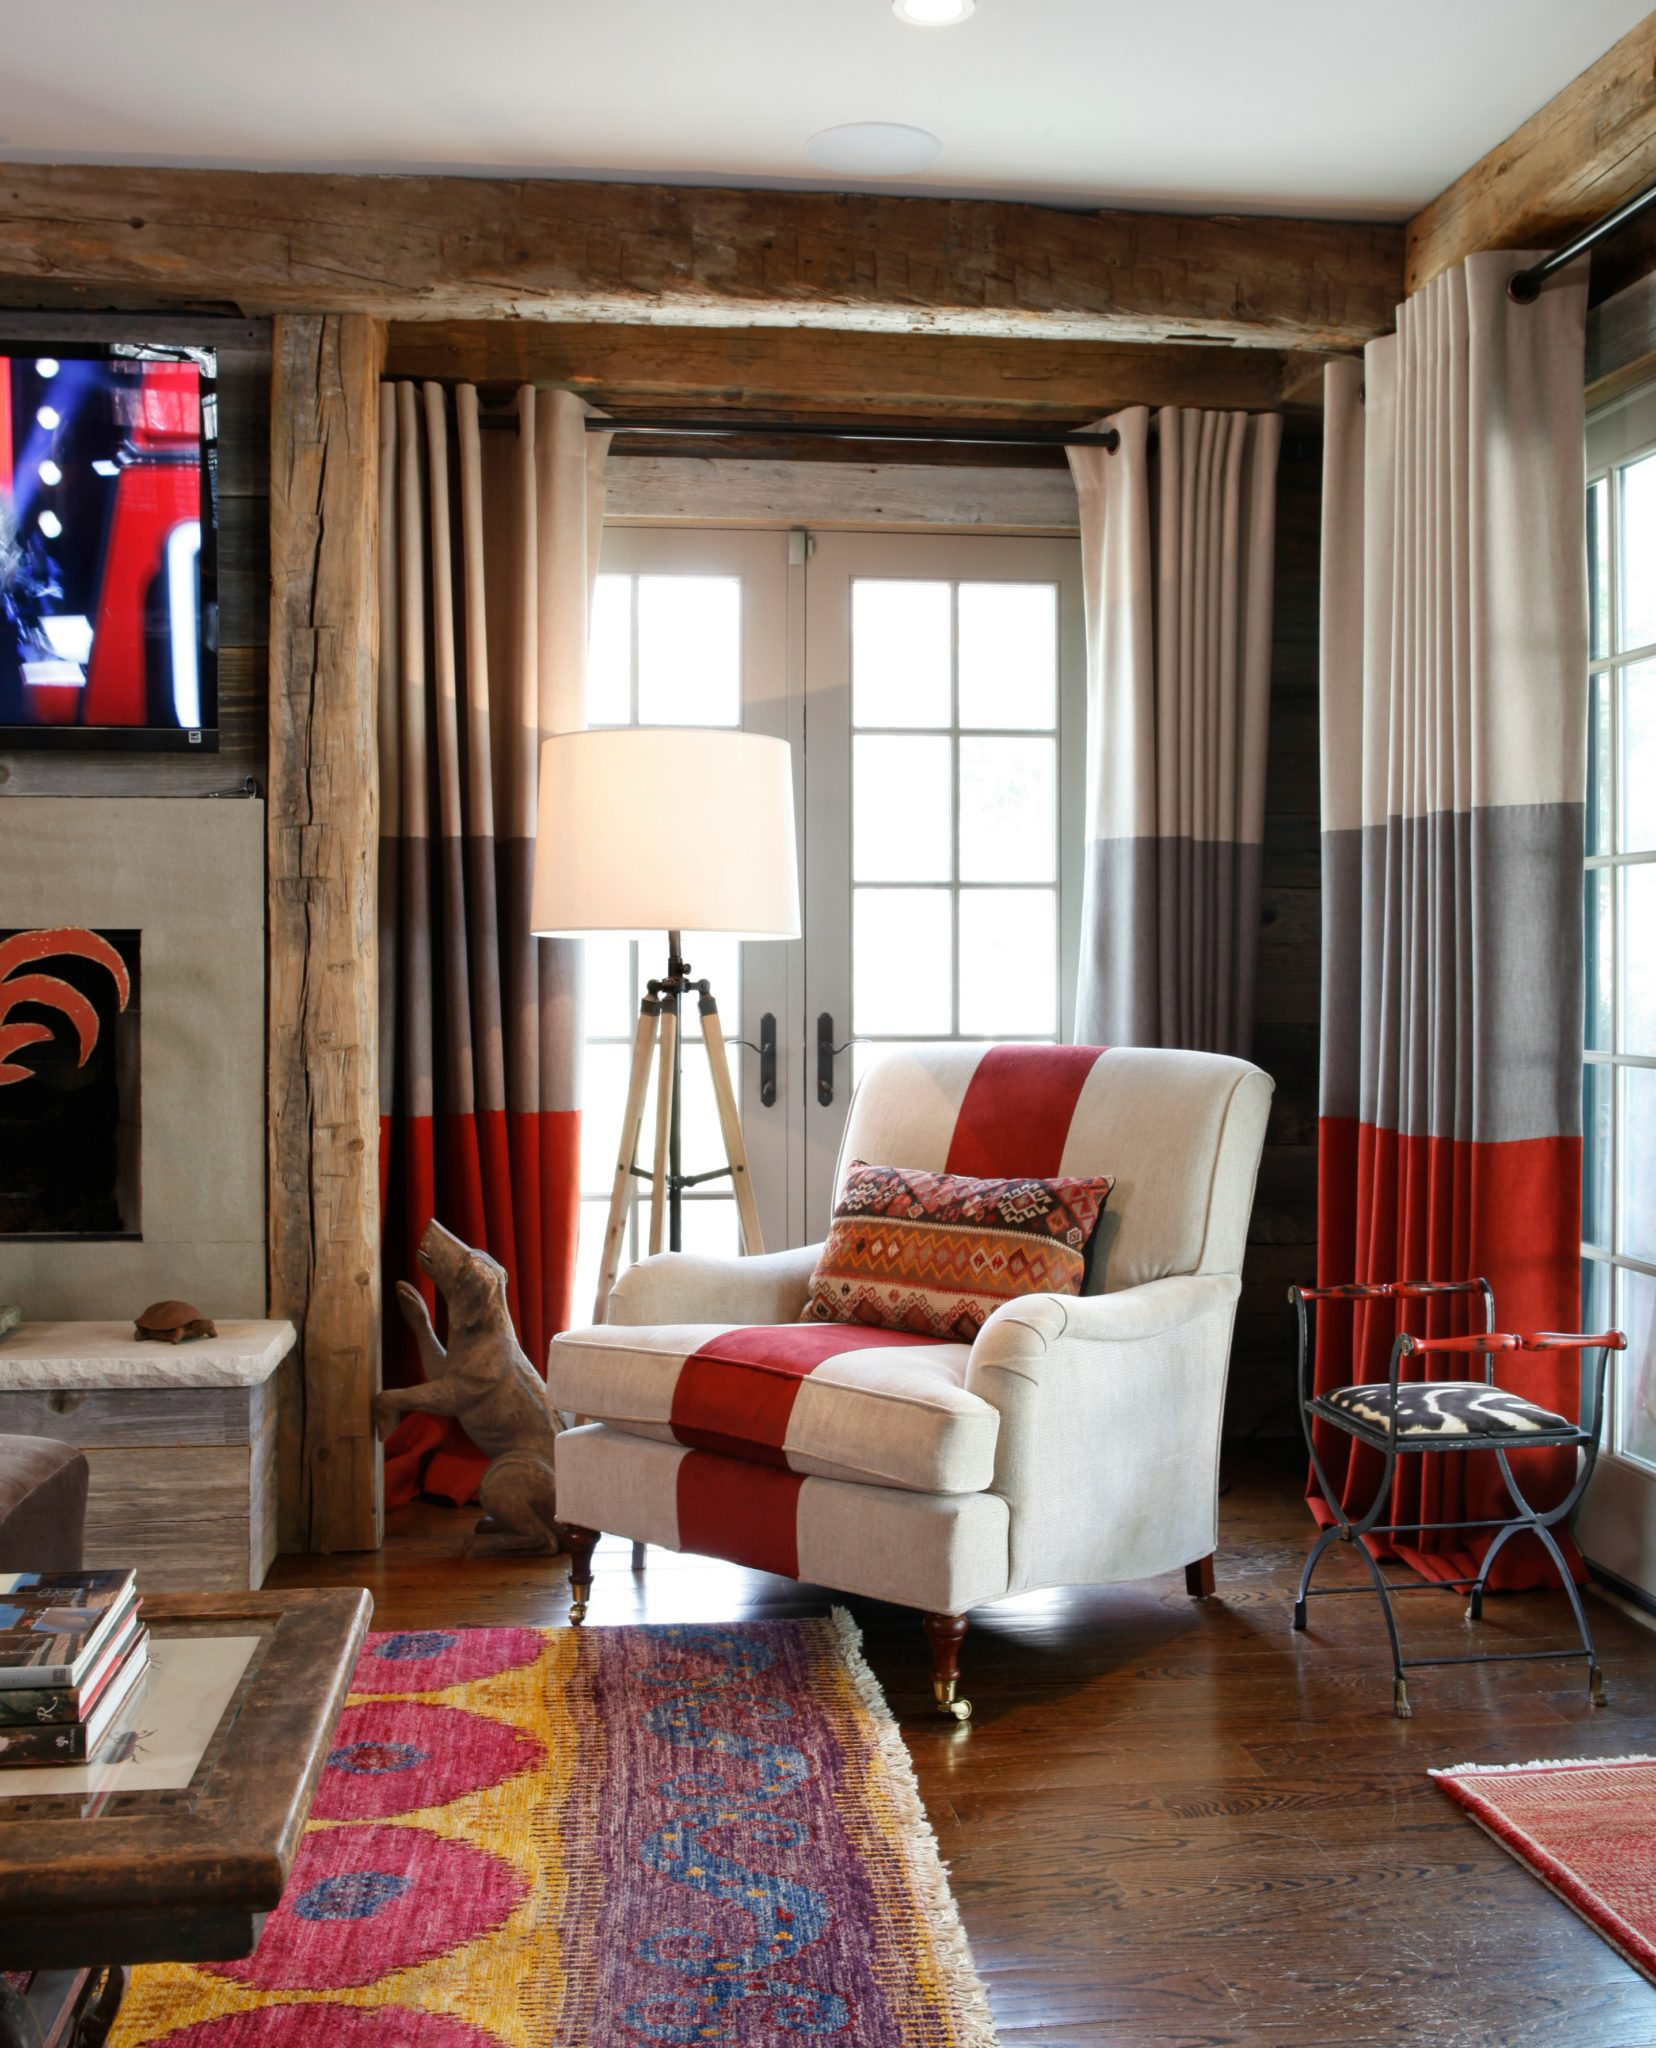 Living with Color by Judy King Interiors